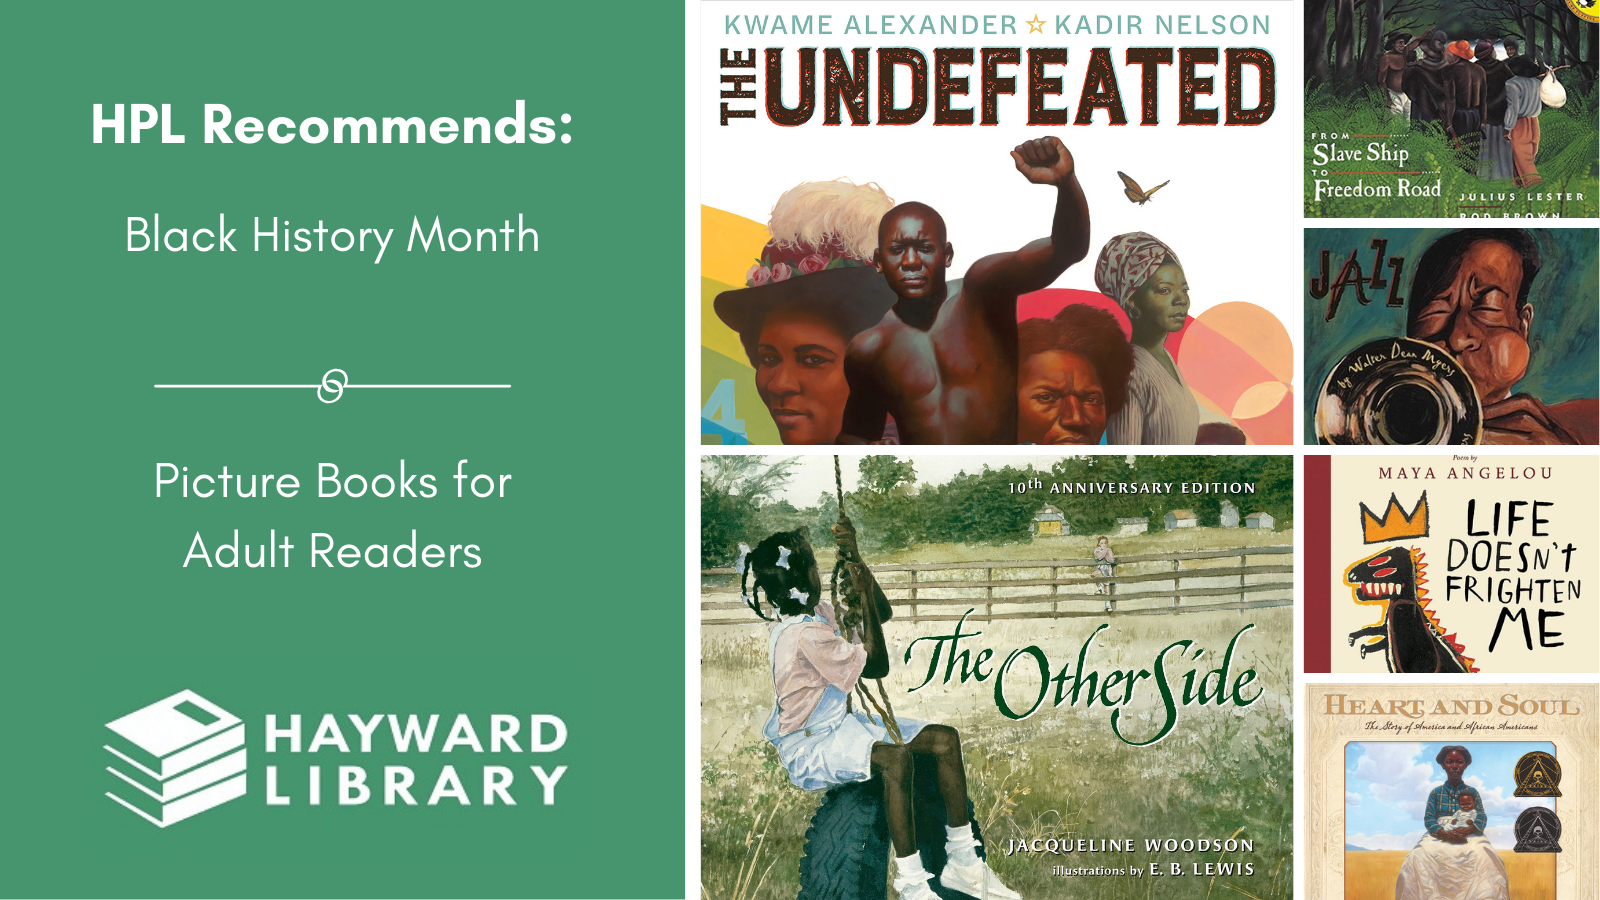 Collage of book covers with a green block on left side that says HPL Recommends, Black History Month, Picture Books for Adult Readers in white text, with Hayward Library logo below it.